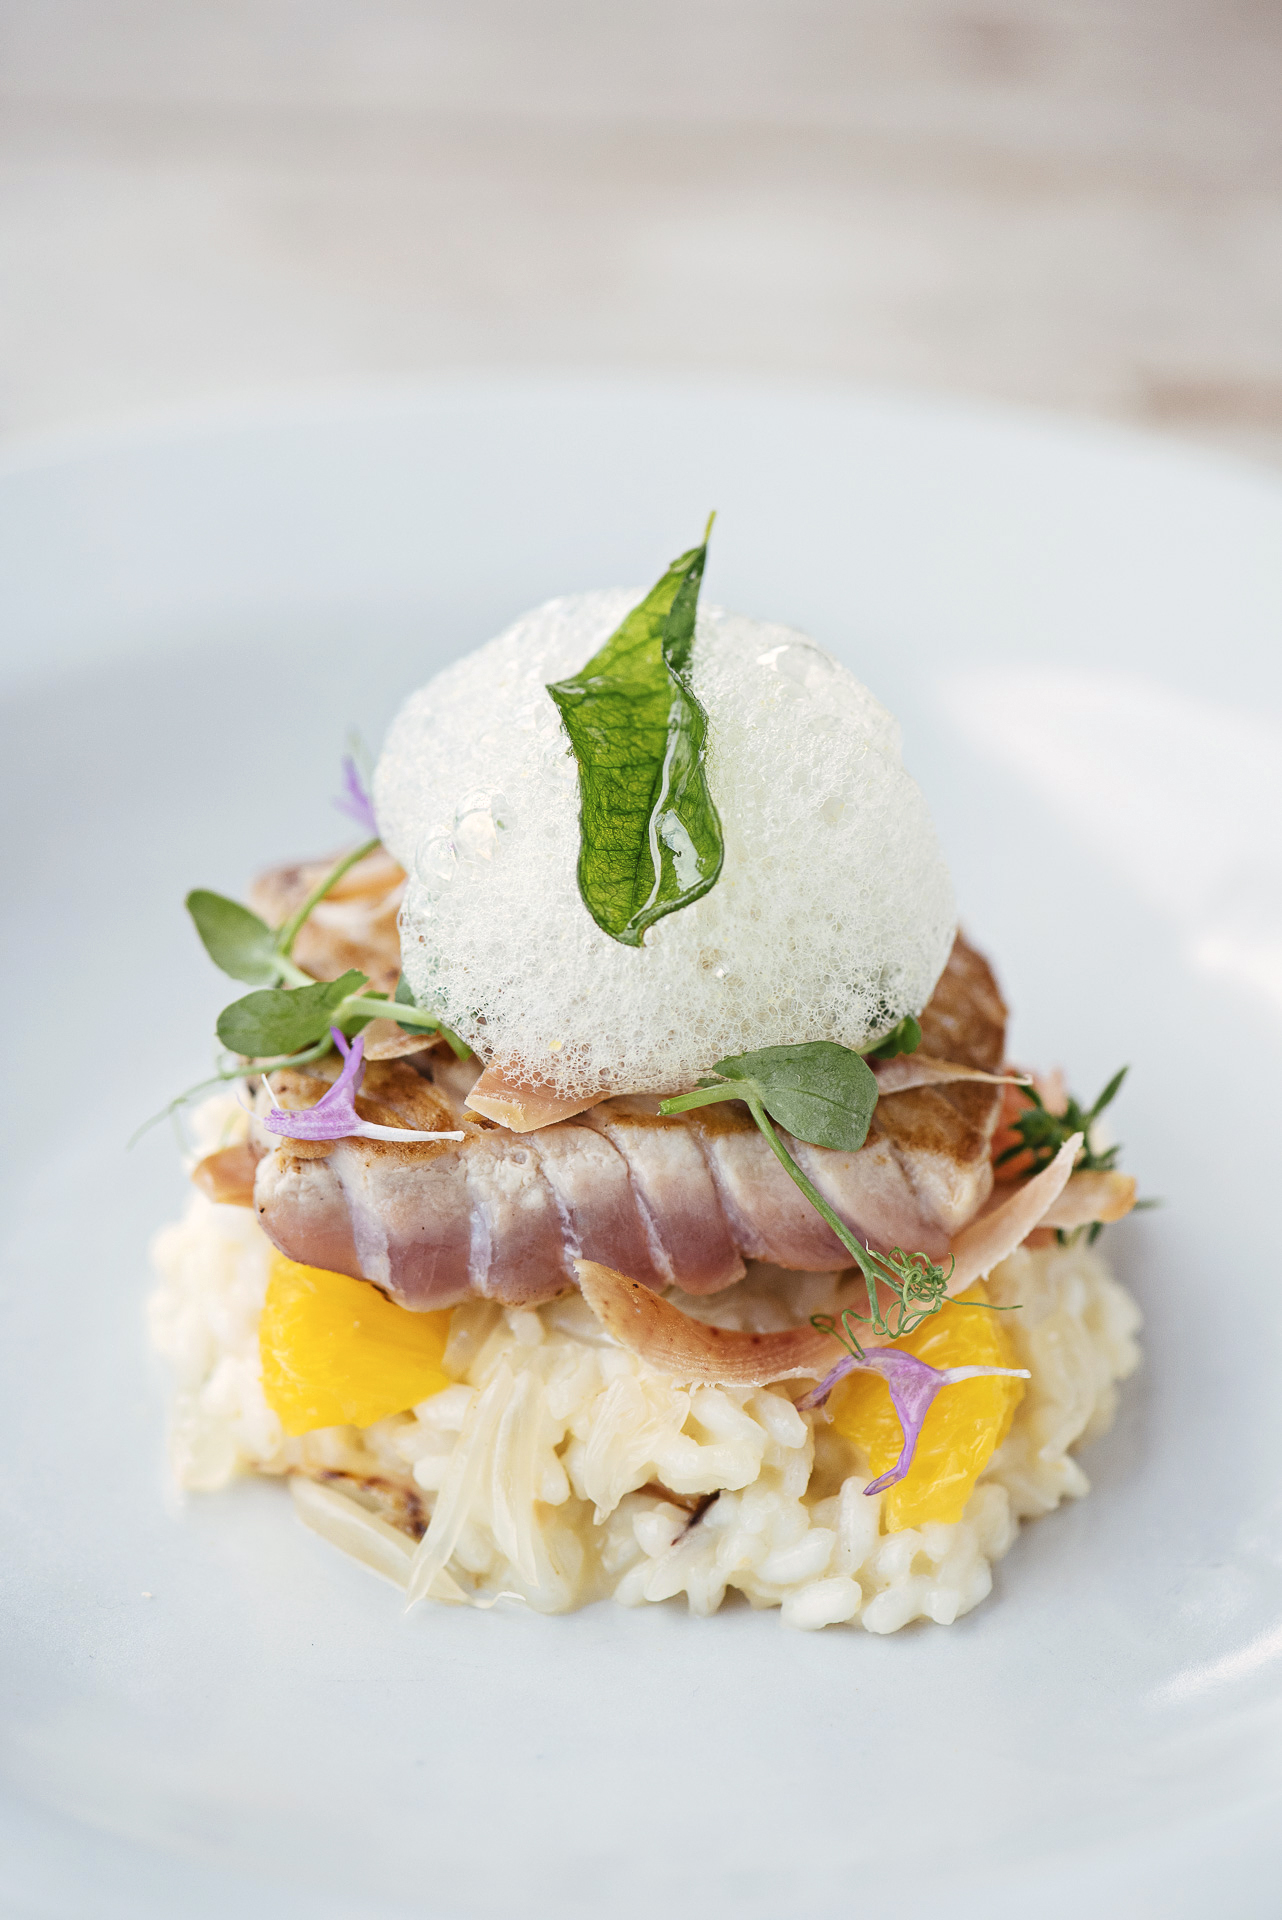 GLM_Smoked tuna belly, vhaloma risotto, citrus foam